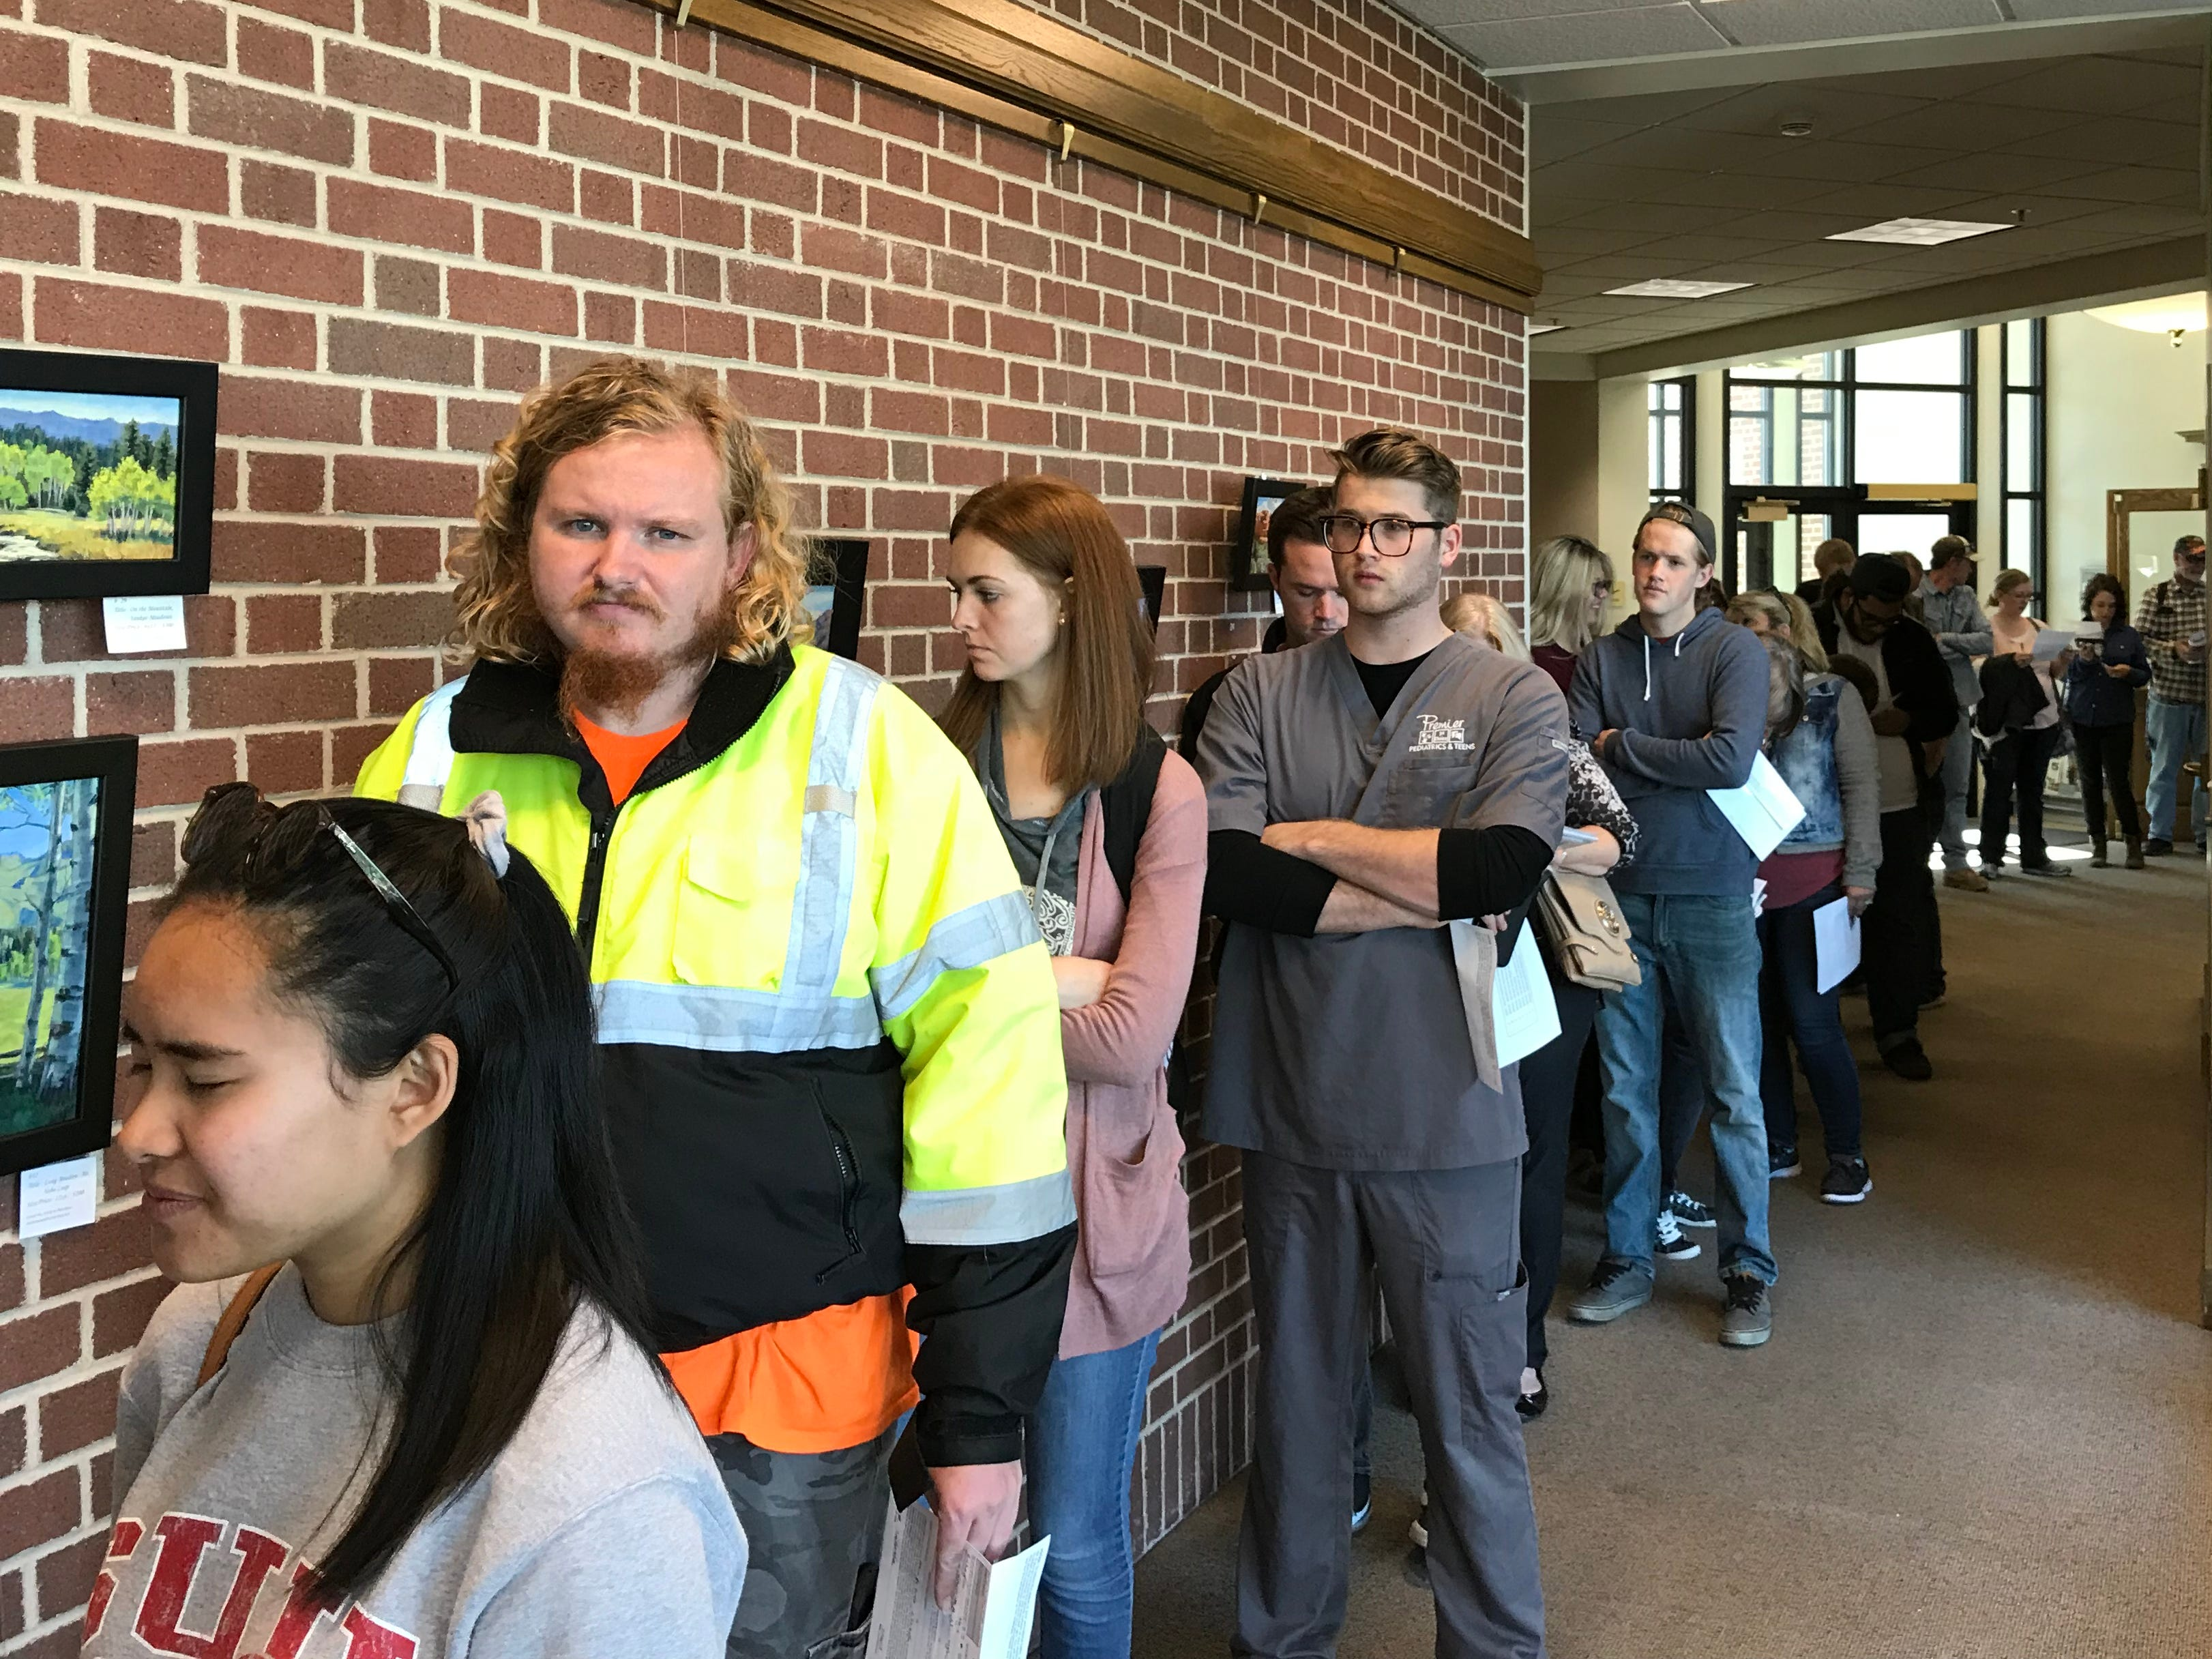 Voters line up at Cedar City Hall on Election Day, Nov. 6, 2018.